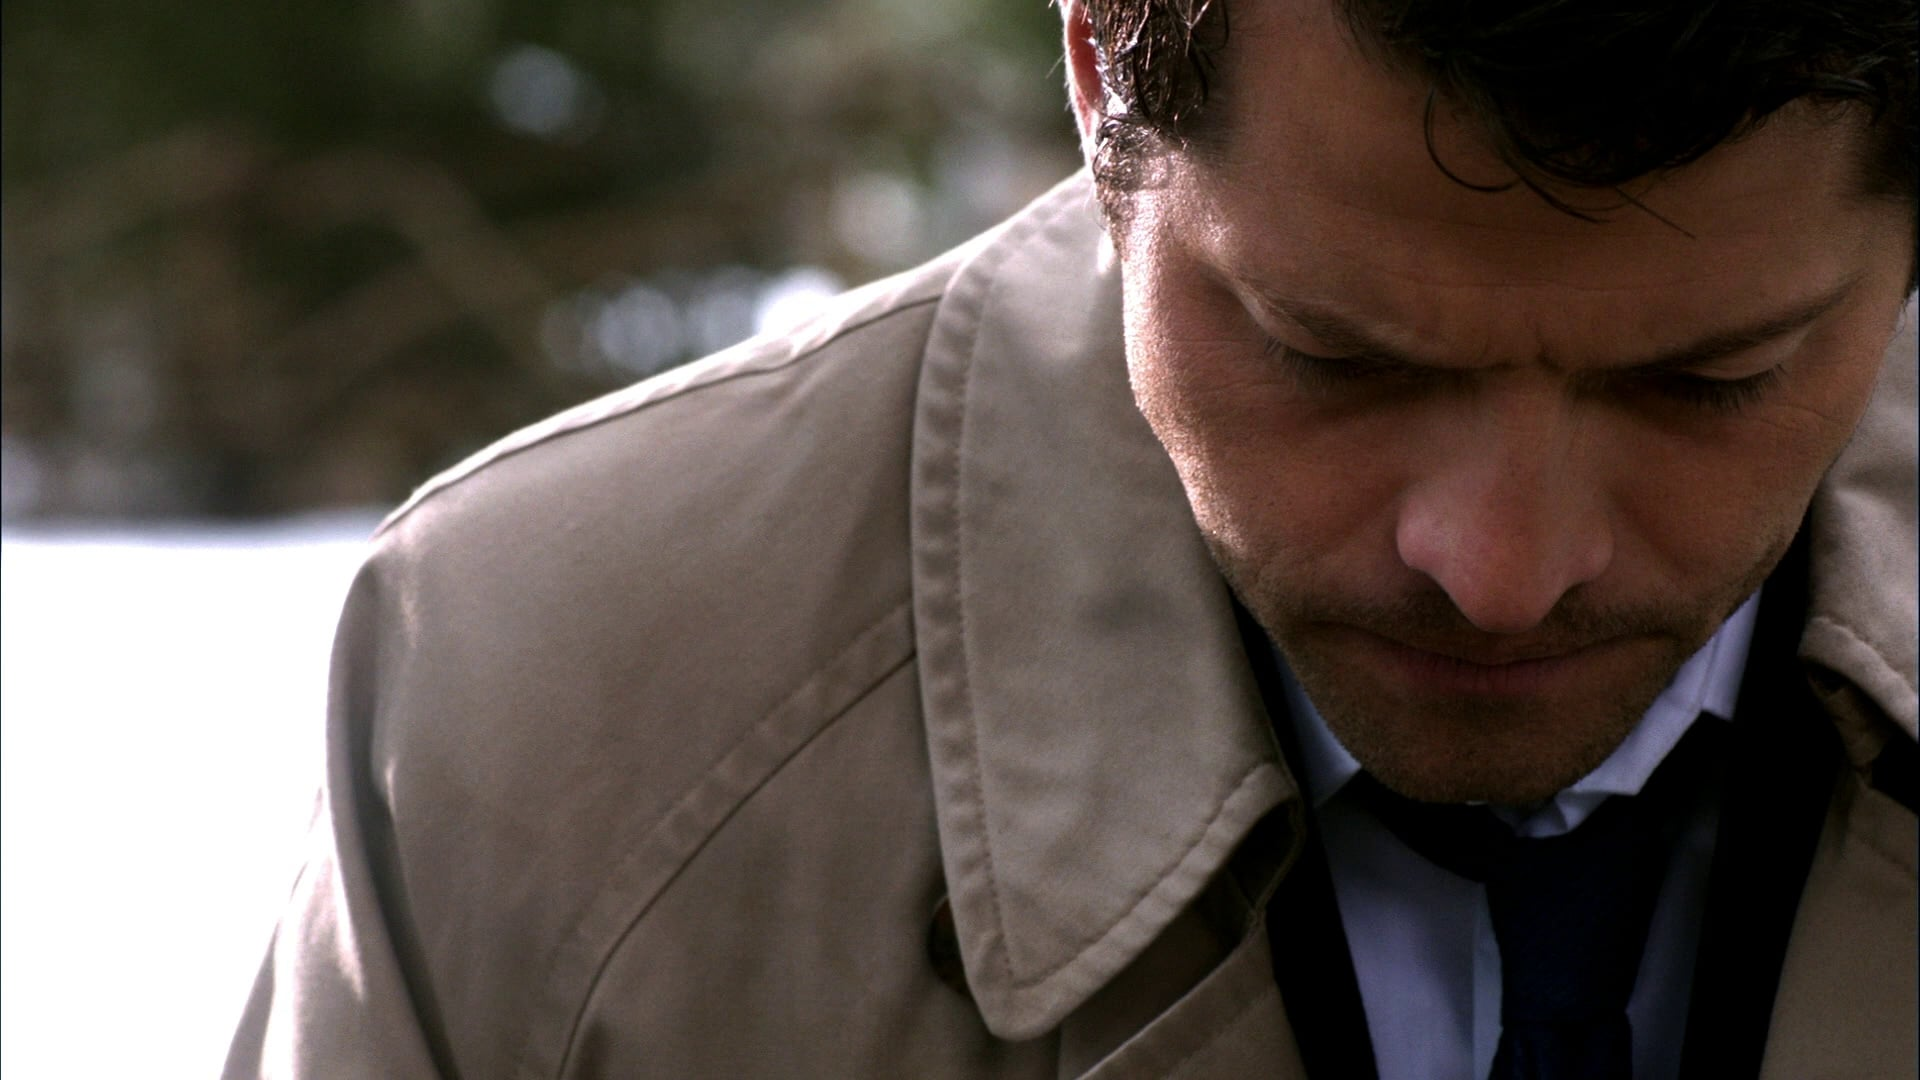 Supernatural - Season 6 Episode 20 : The Man Who Would Be King